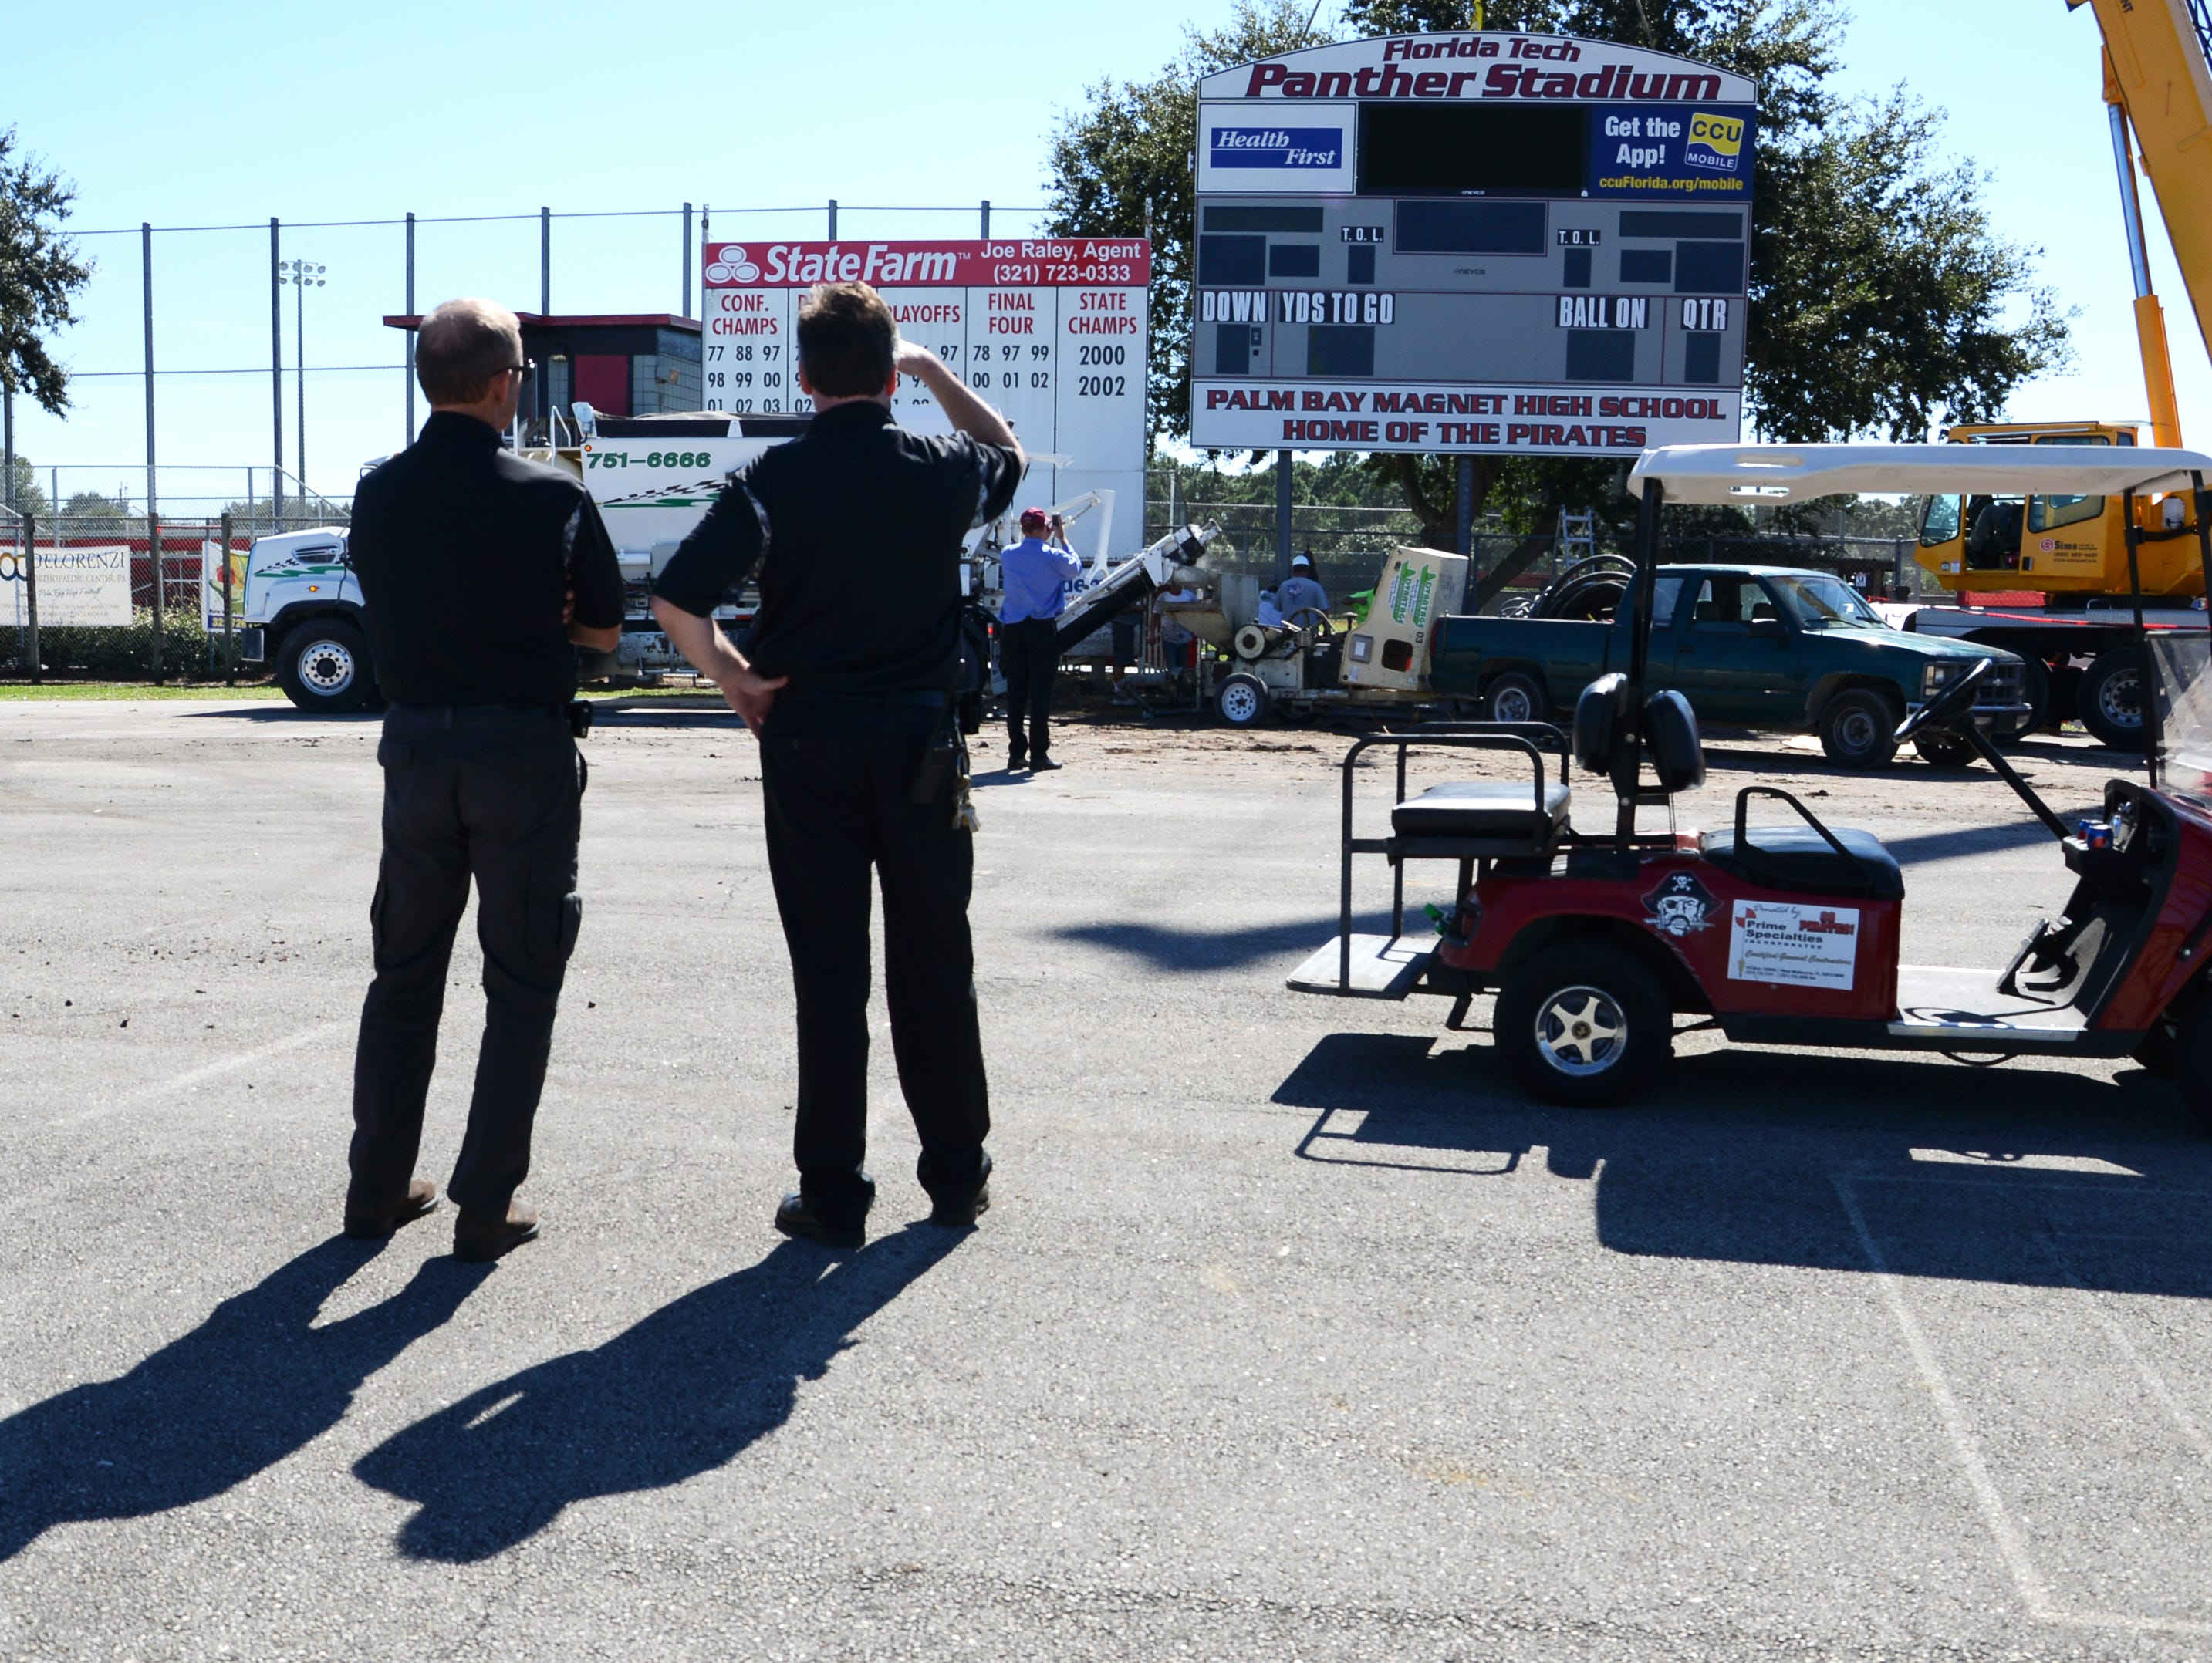 Palm Bay High officials watch as workers install the new scoreboard sign at Panther Stadium in Melbourne Friday.